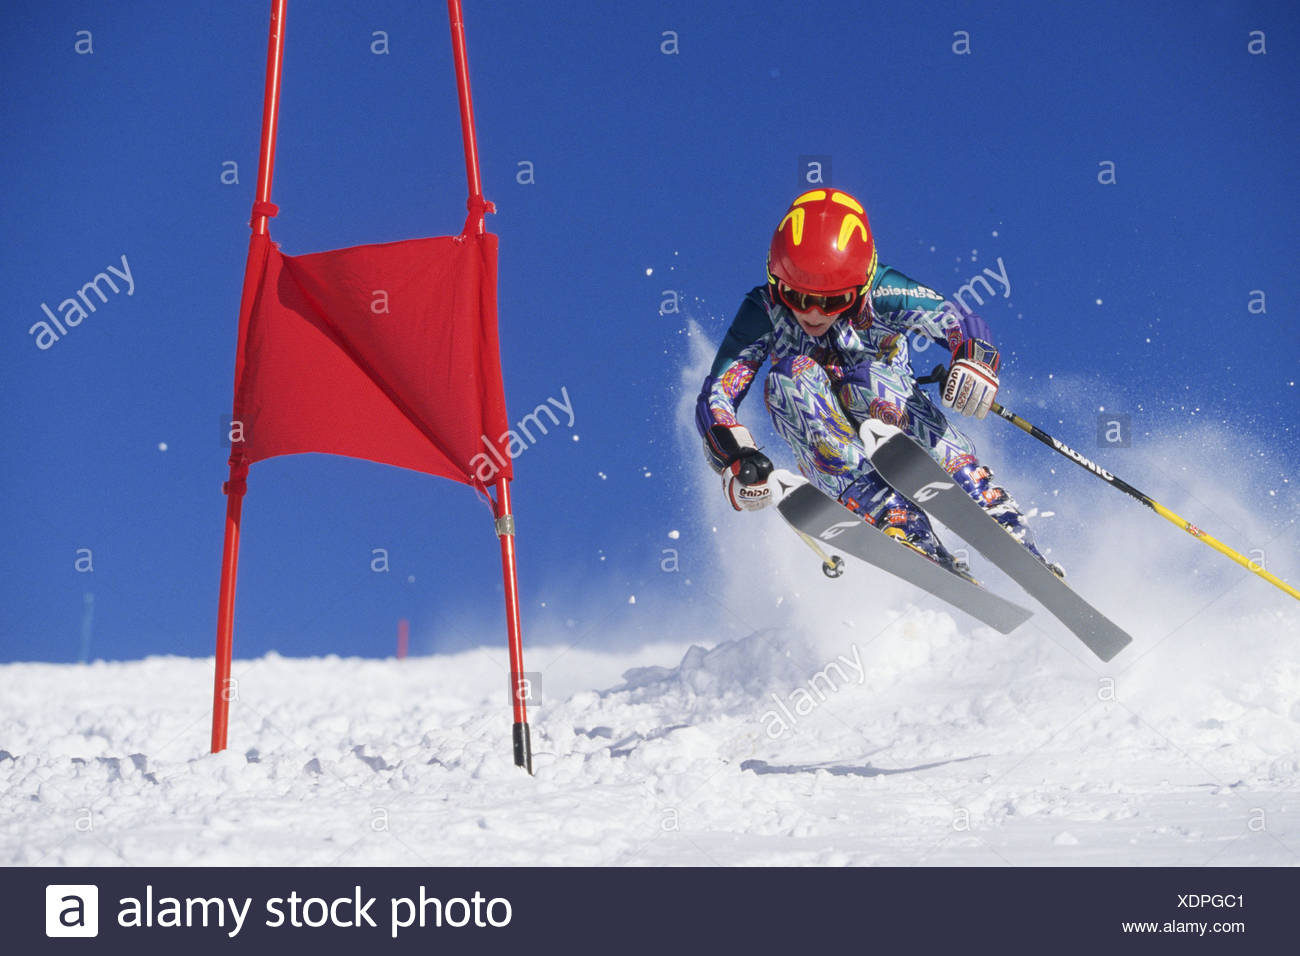 skier racing downhill, Austria, Alps - Stock Image